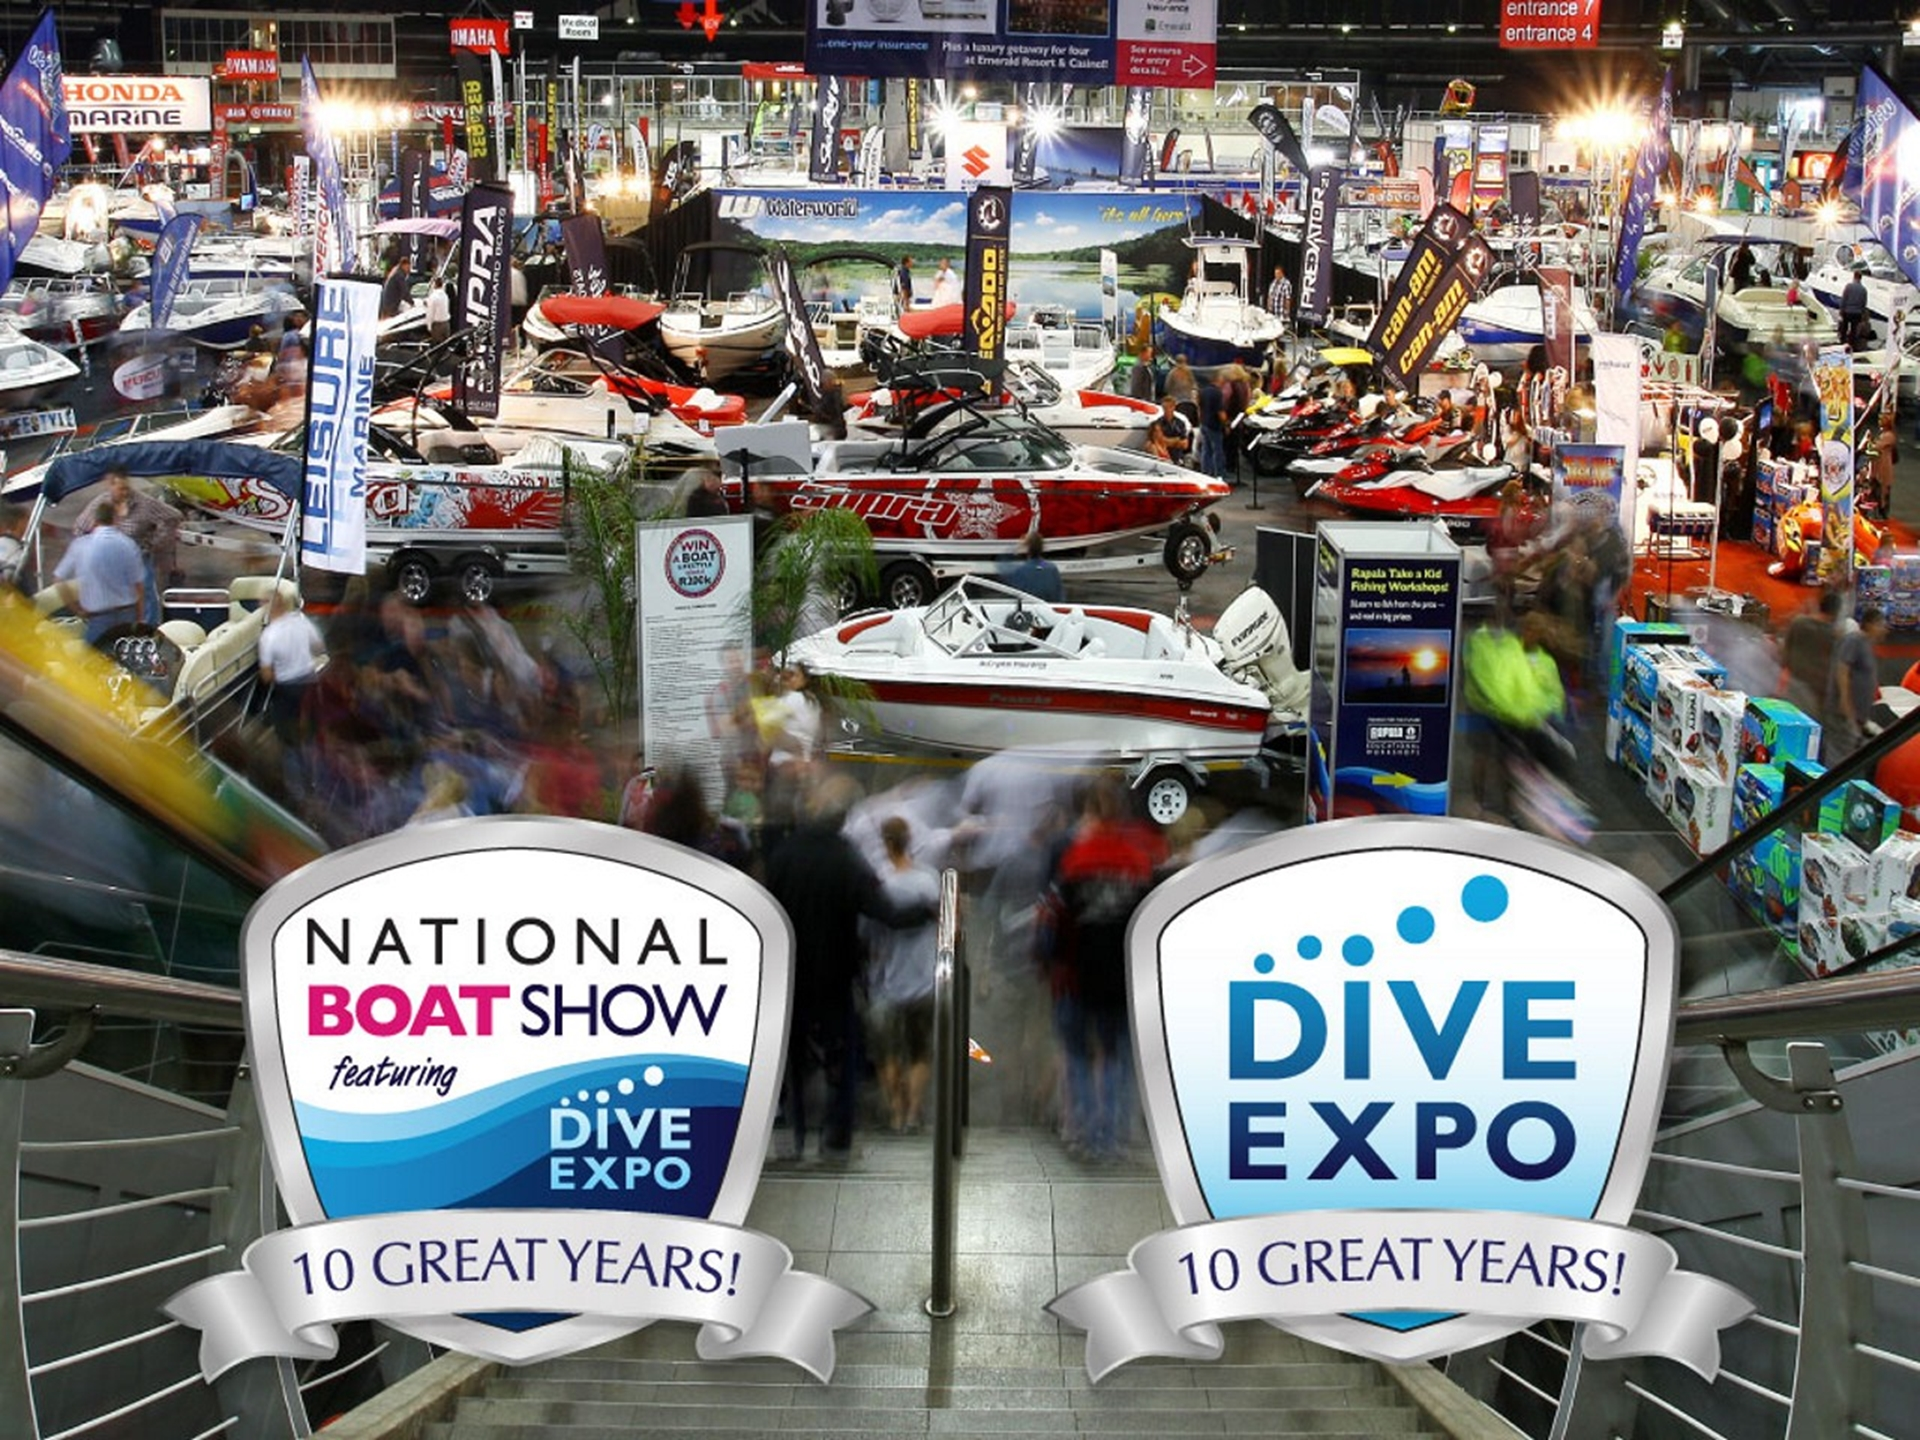 National Boat Show